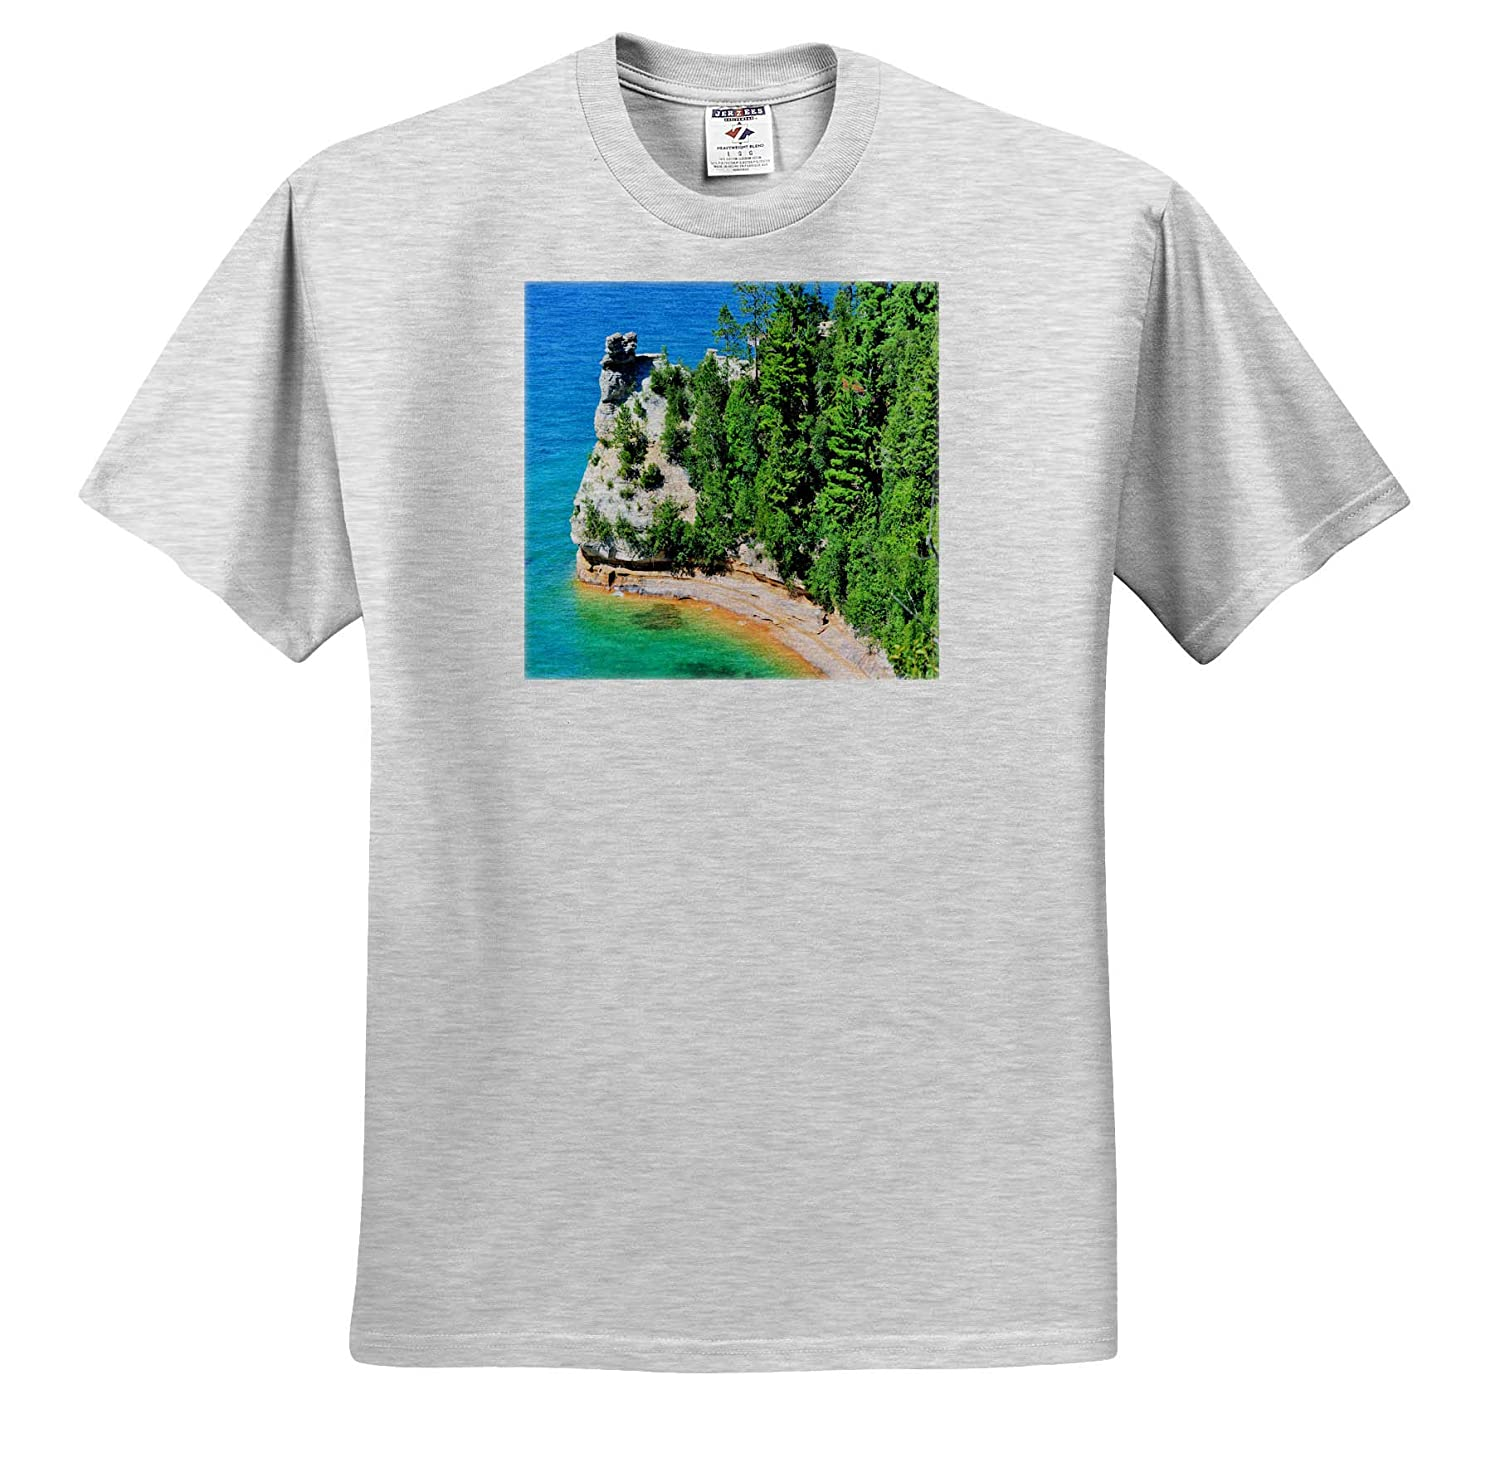 3dRose Dreamscapes by Leslie ts/_314277 Scenery Adult T-Shirt XL Miners Castle